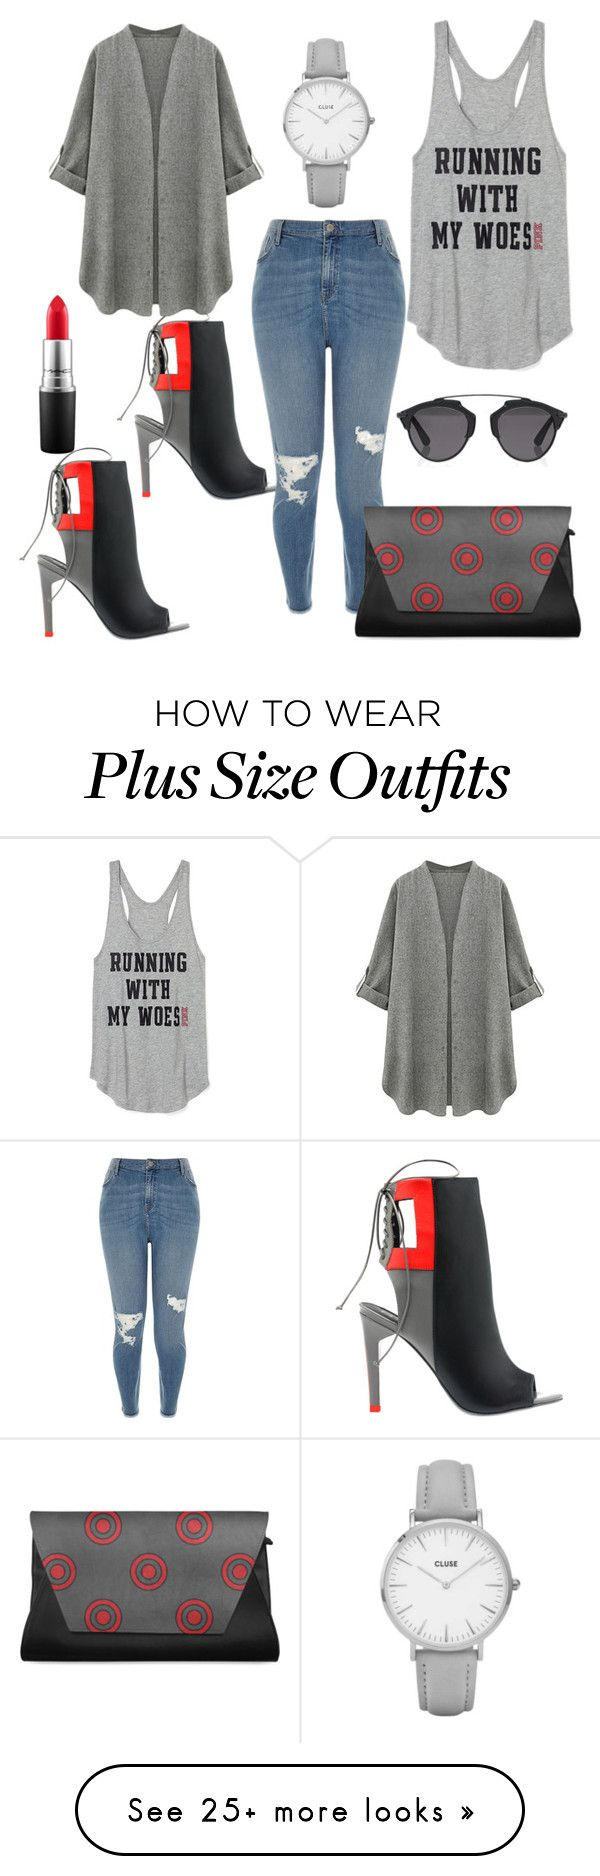 """Outfit for normal and plus size"" by michamc on Polyvore featuring Alepel, River Island, MAC Cosmetics, Christian Dior and Topshop"